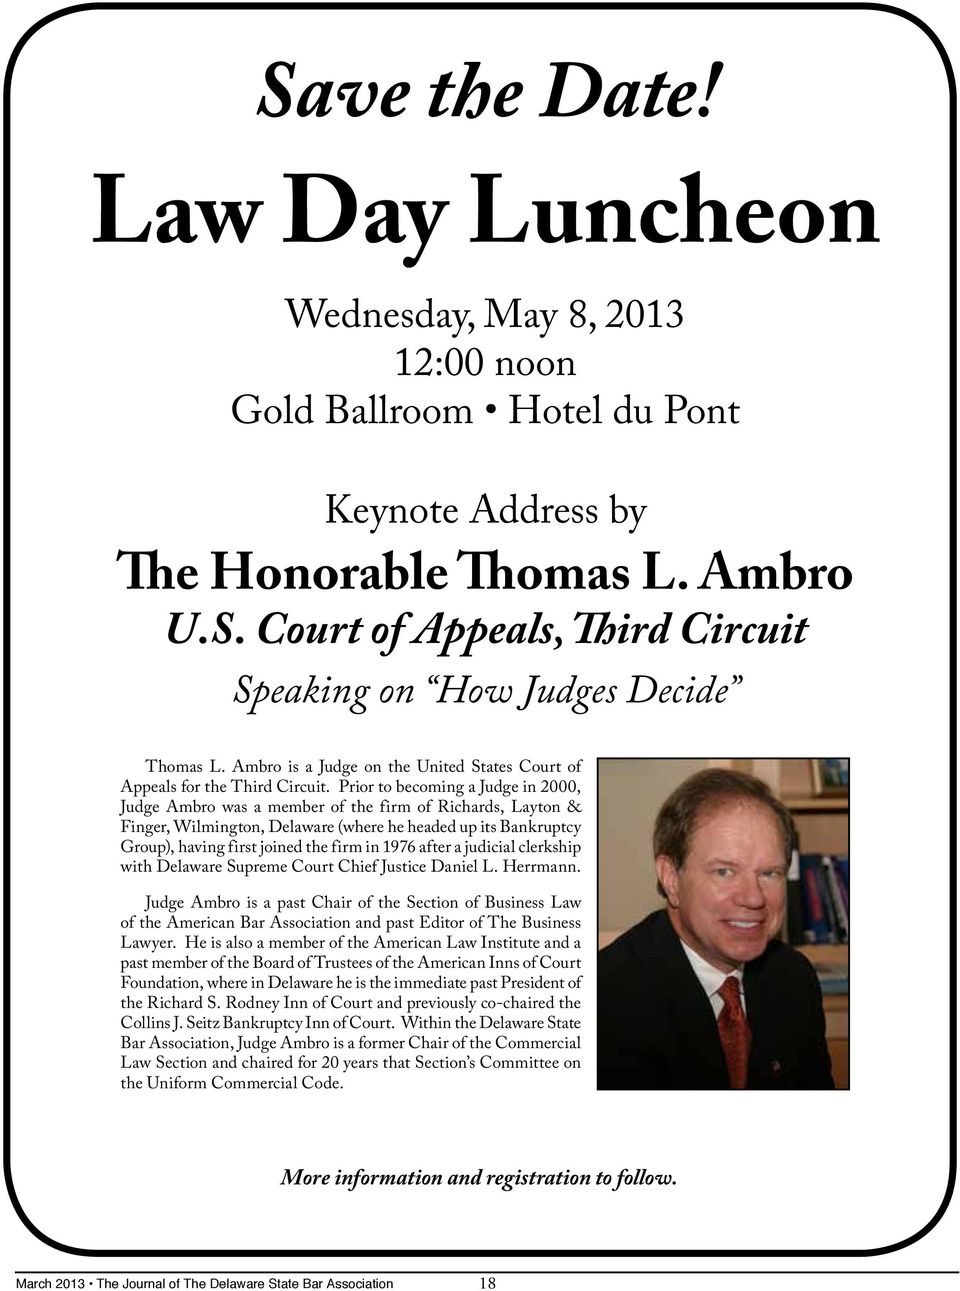 Prior to becoming a Judge in 2000, Judge Ambro was a member of the firm of Richards, Layton & Finger, Wilmington, Delaware (where he headed up its Bankruptcy Group), having first joined the firm in